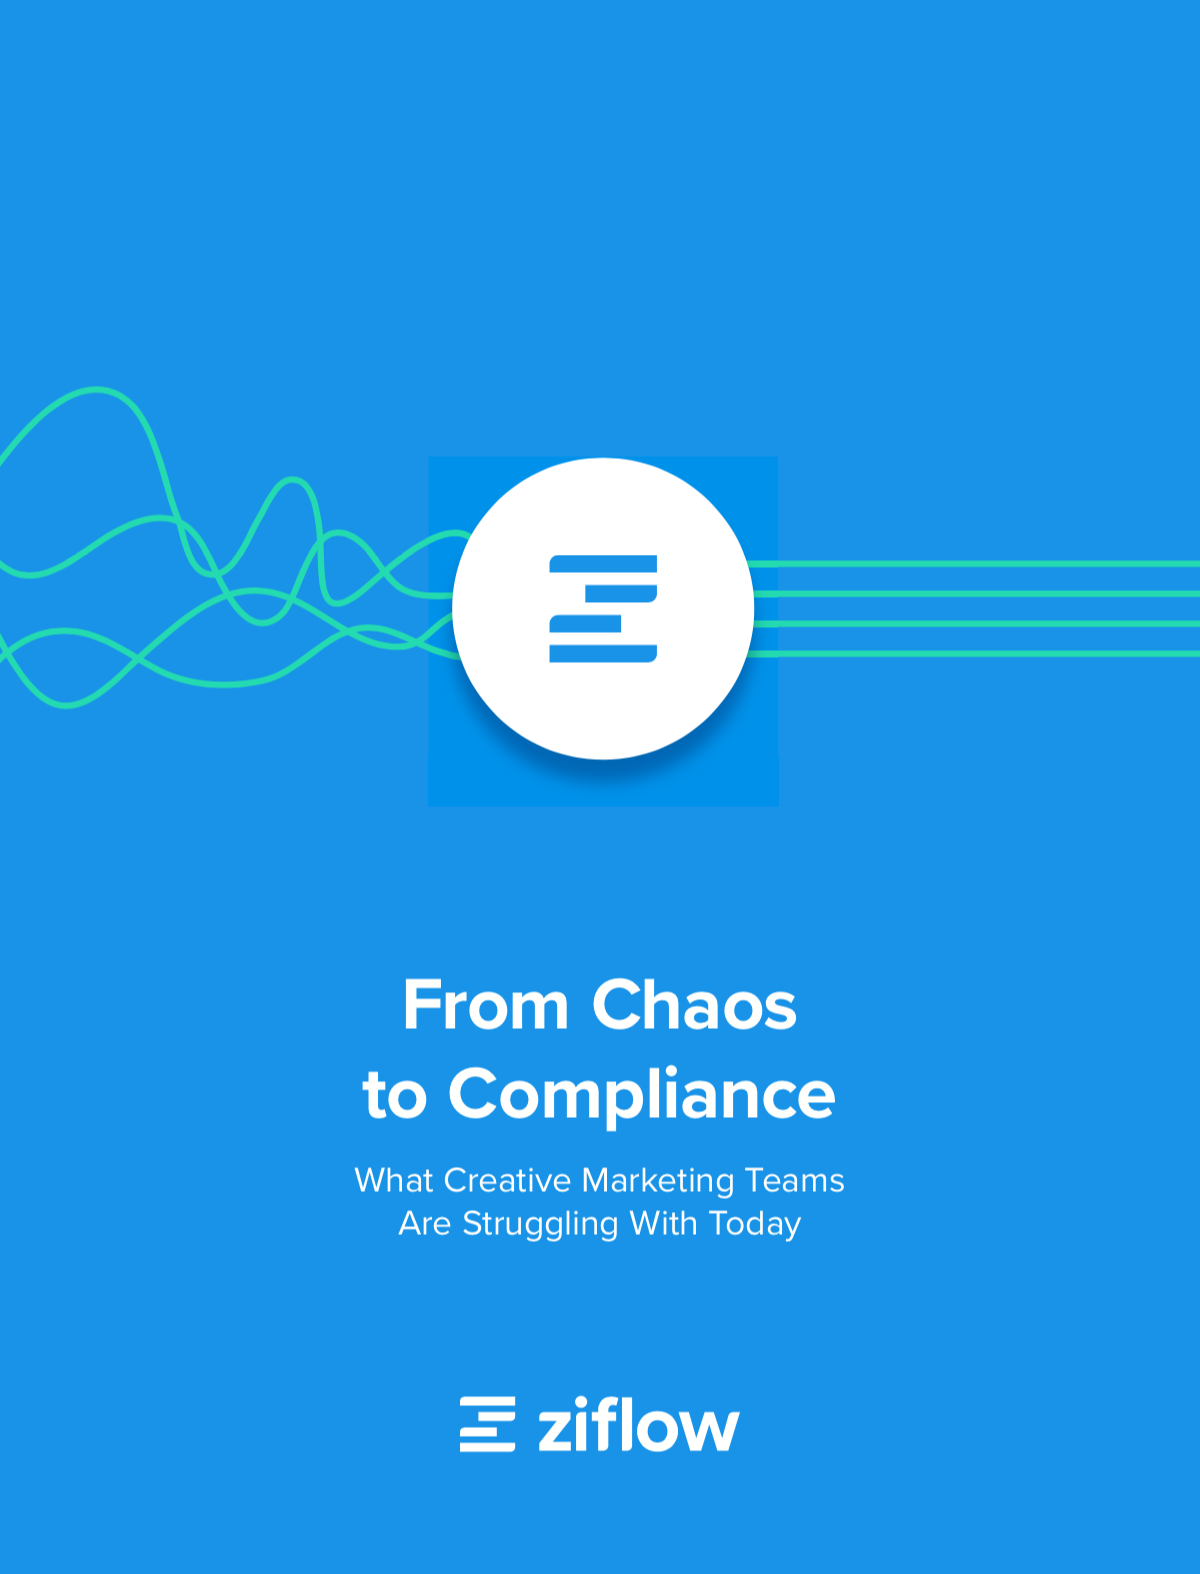 From Chaos to Compliance